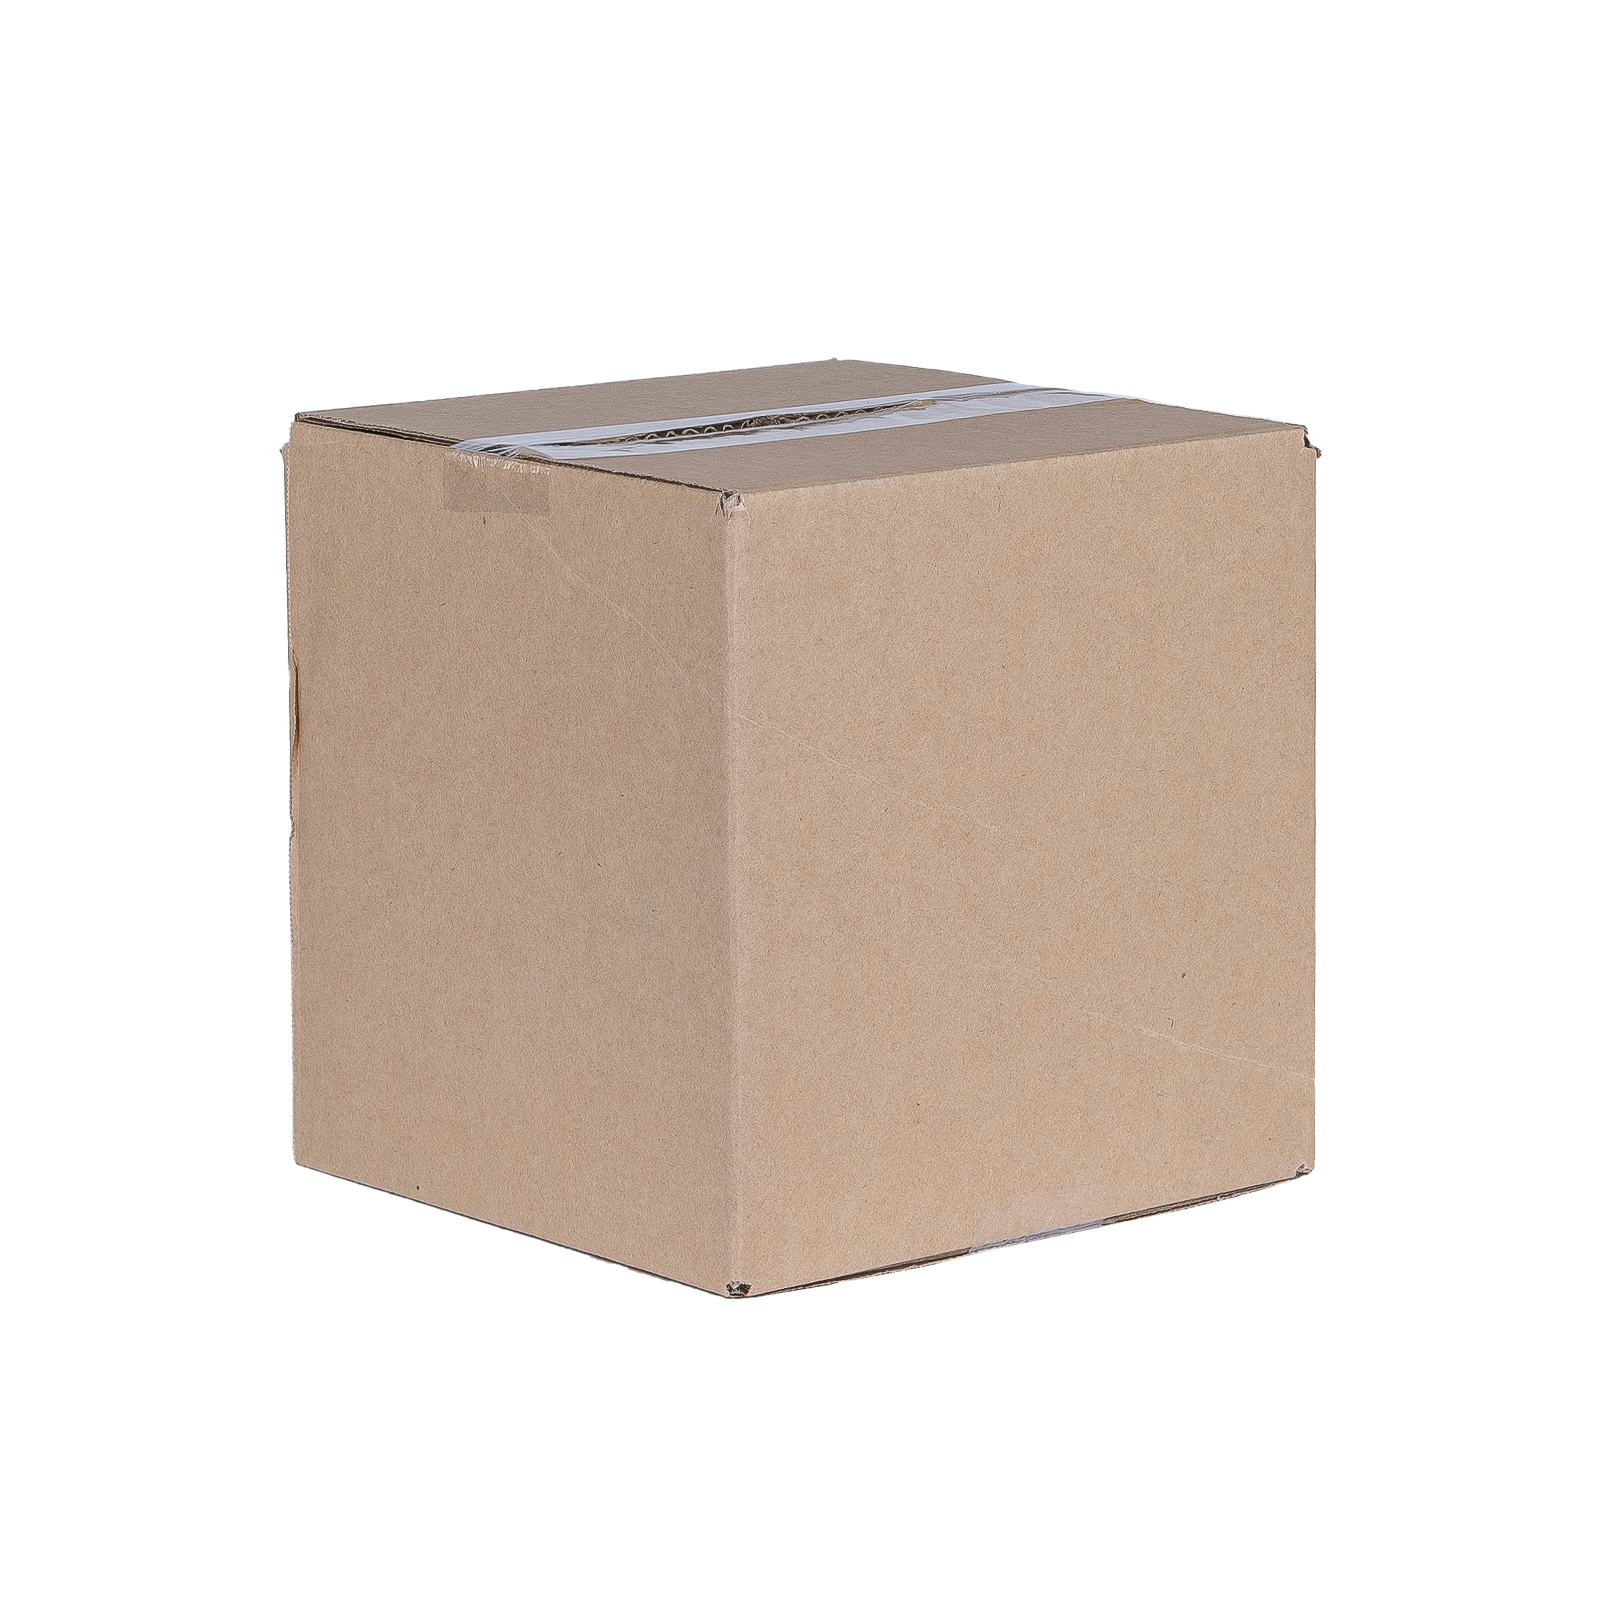 Wrap & Move 200 x 200 x 200mm Packing Box